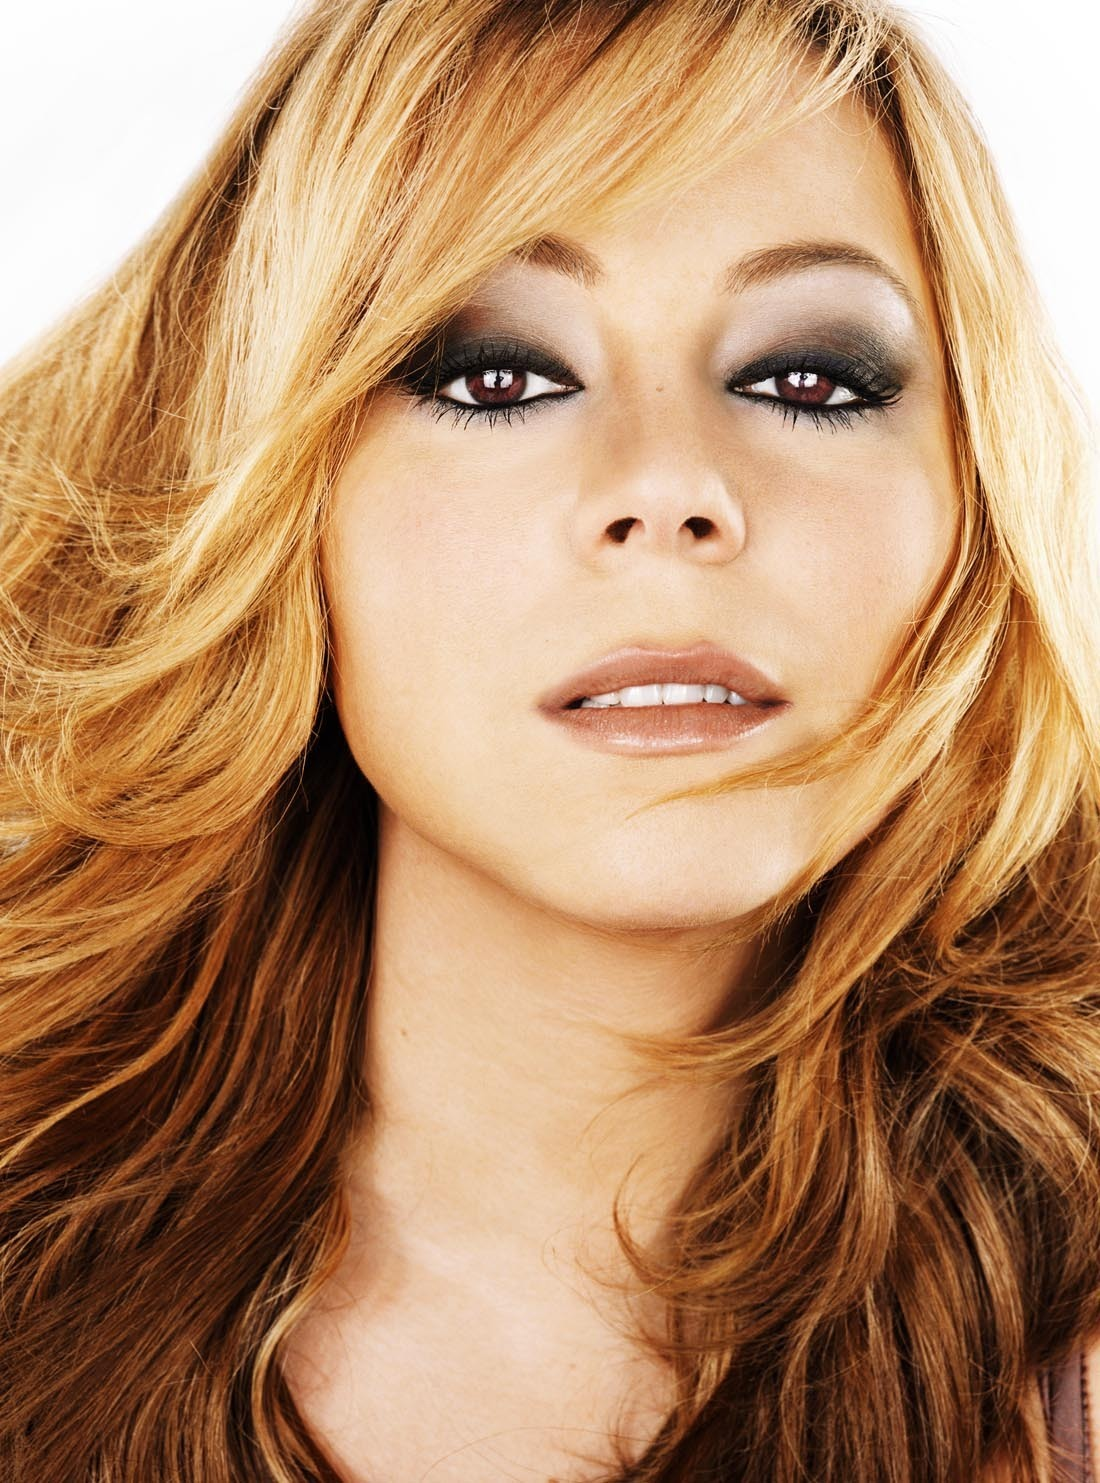 Mariah Mariah Carey Photo 1576285 Fanpop